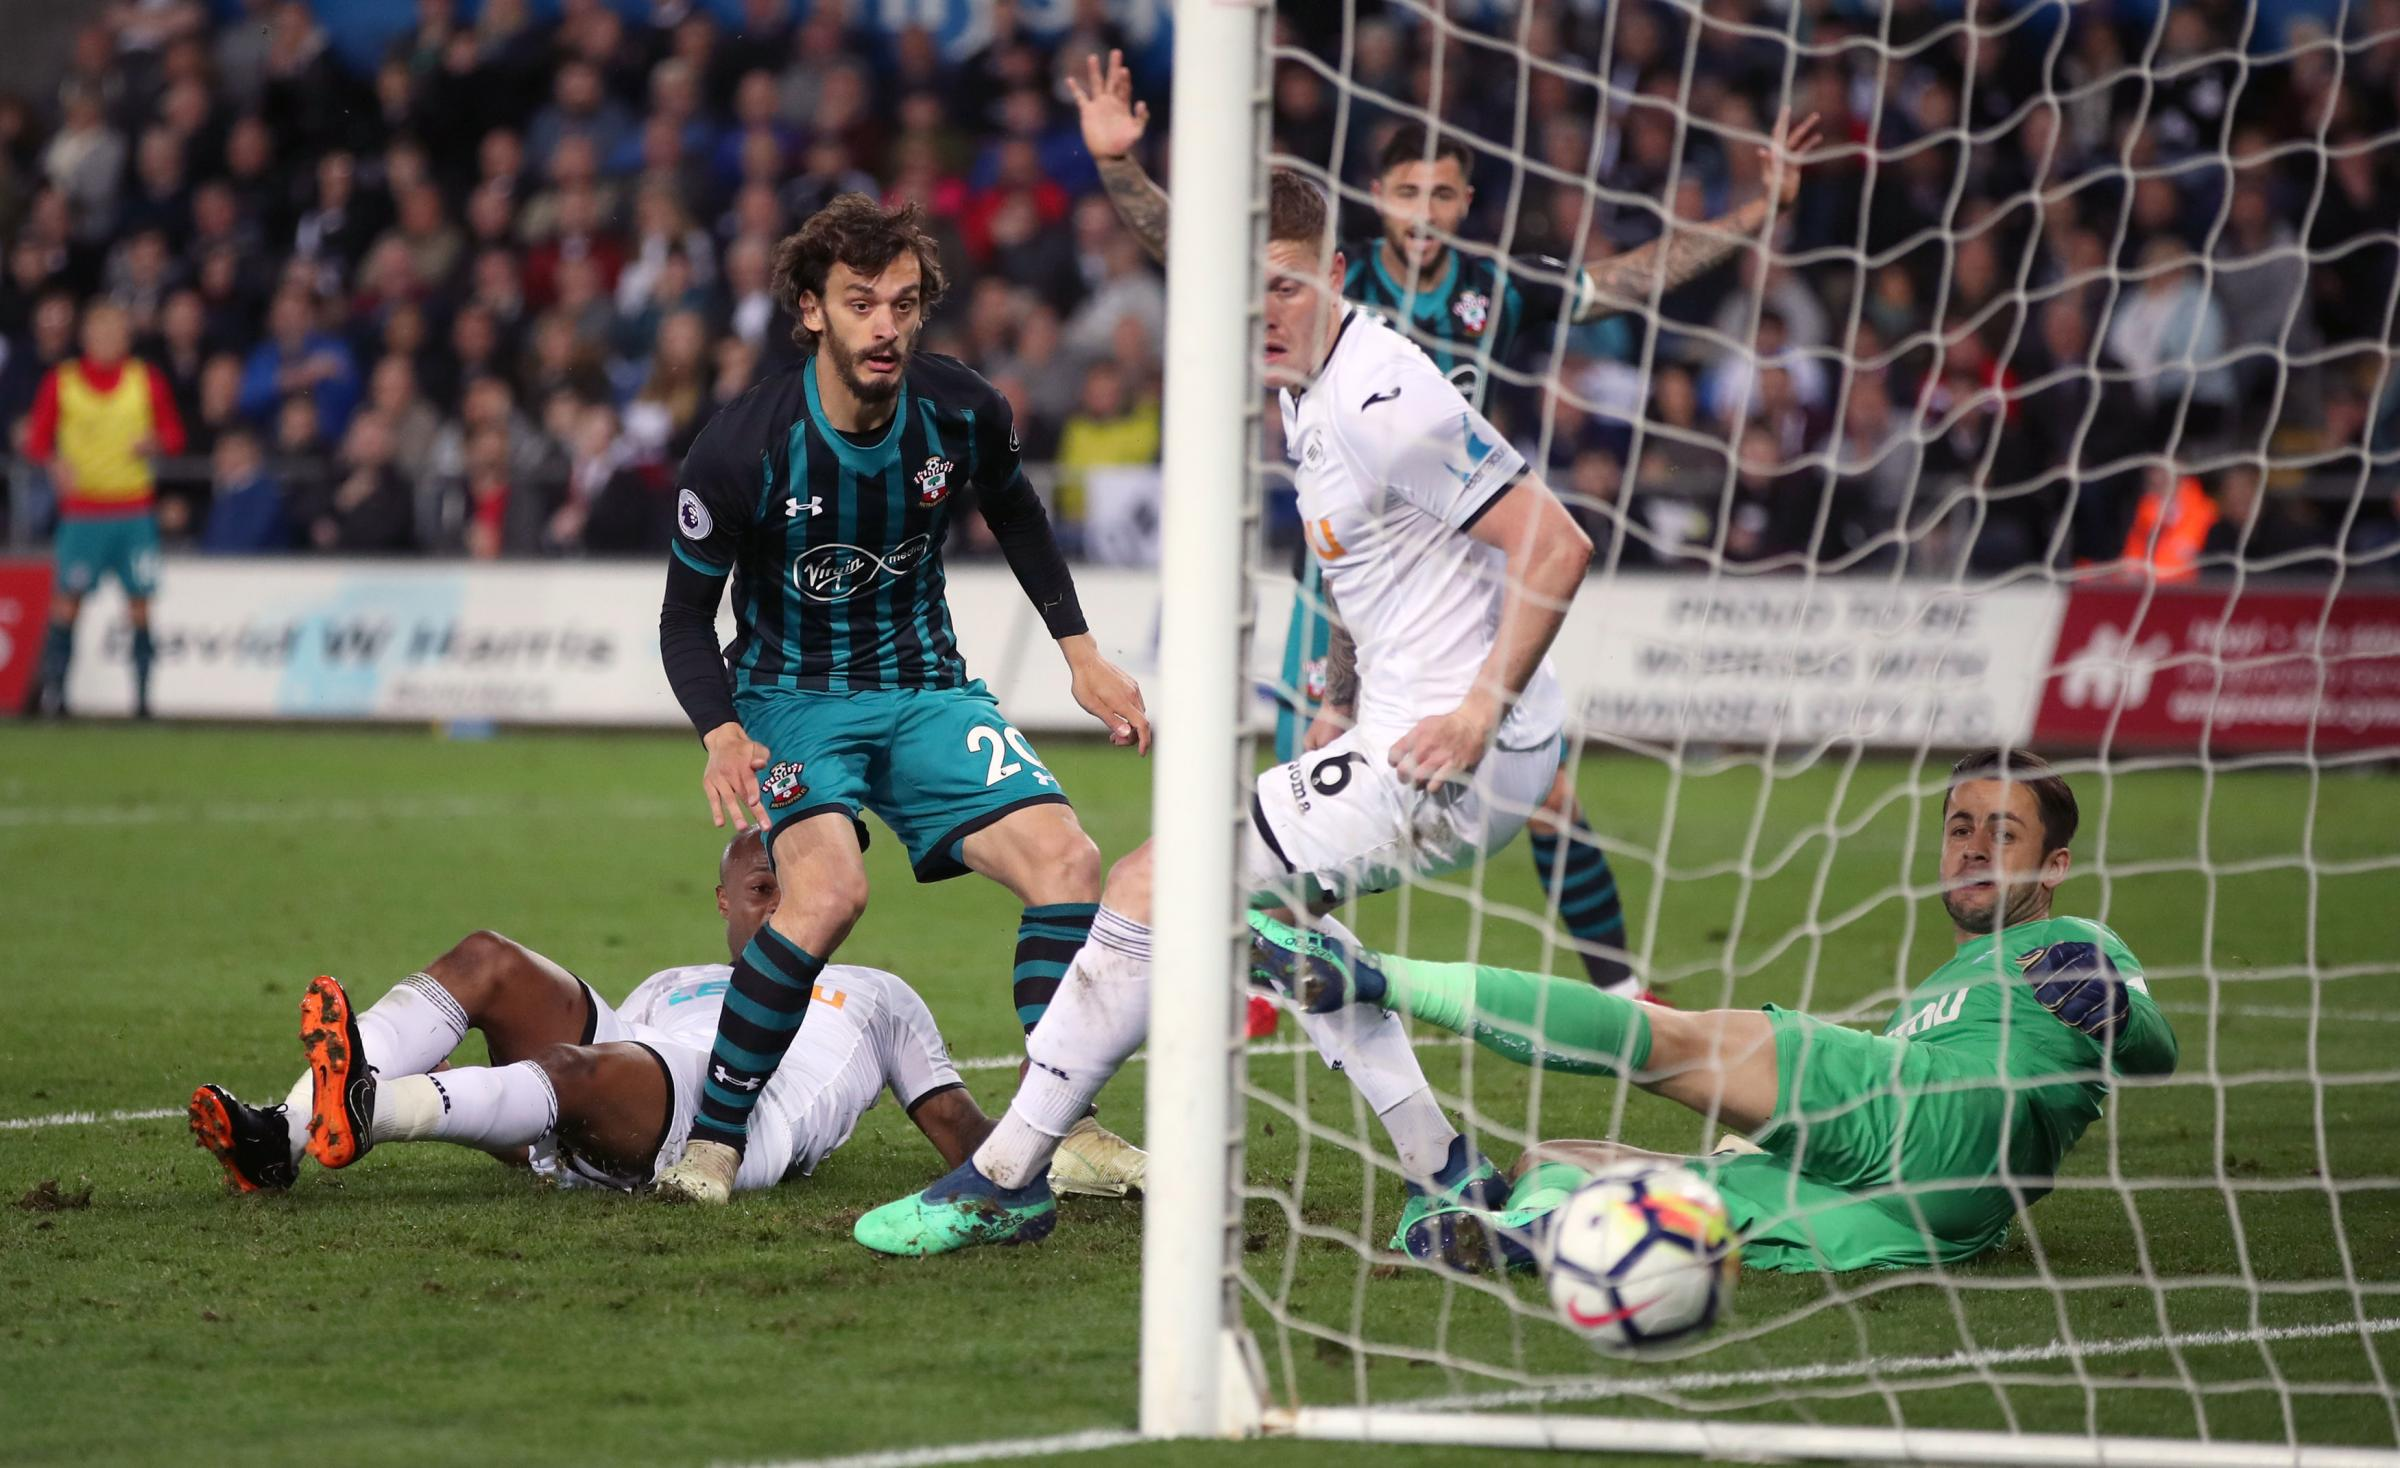 WATCH: Gabbiadini's finest moment in a Saints shirt